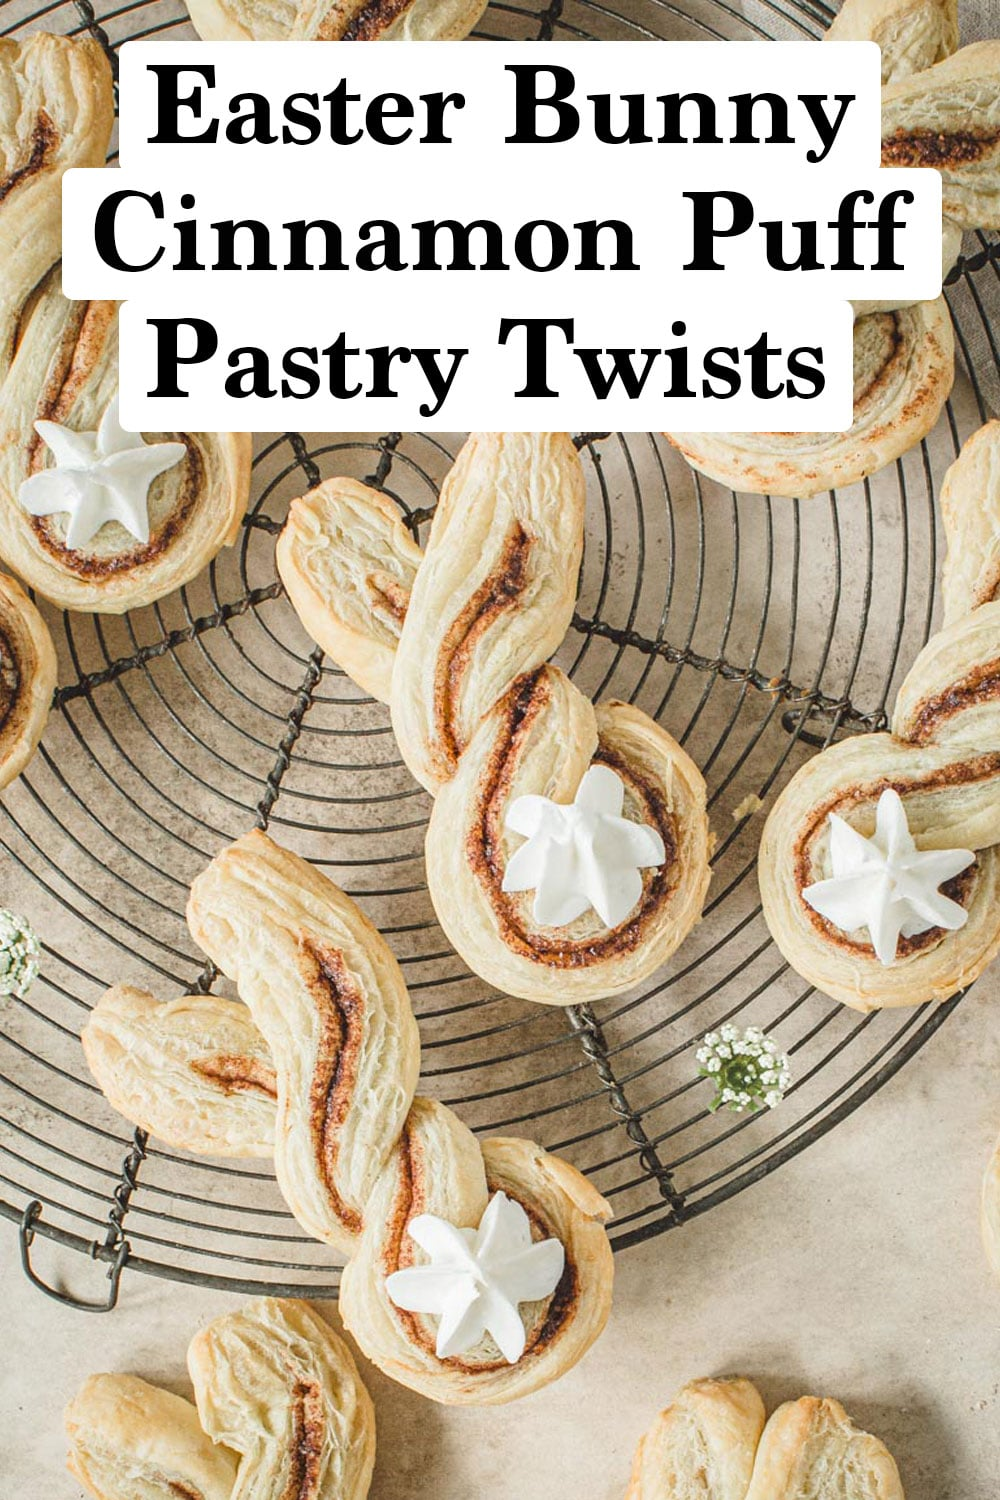 Cinnamon puff pastries shaped like bunnies with frosting tails on a wire rack.